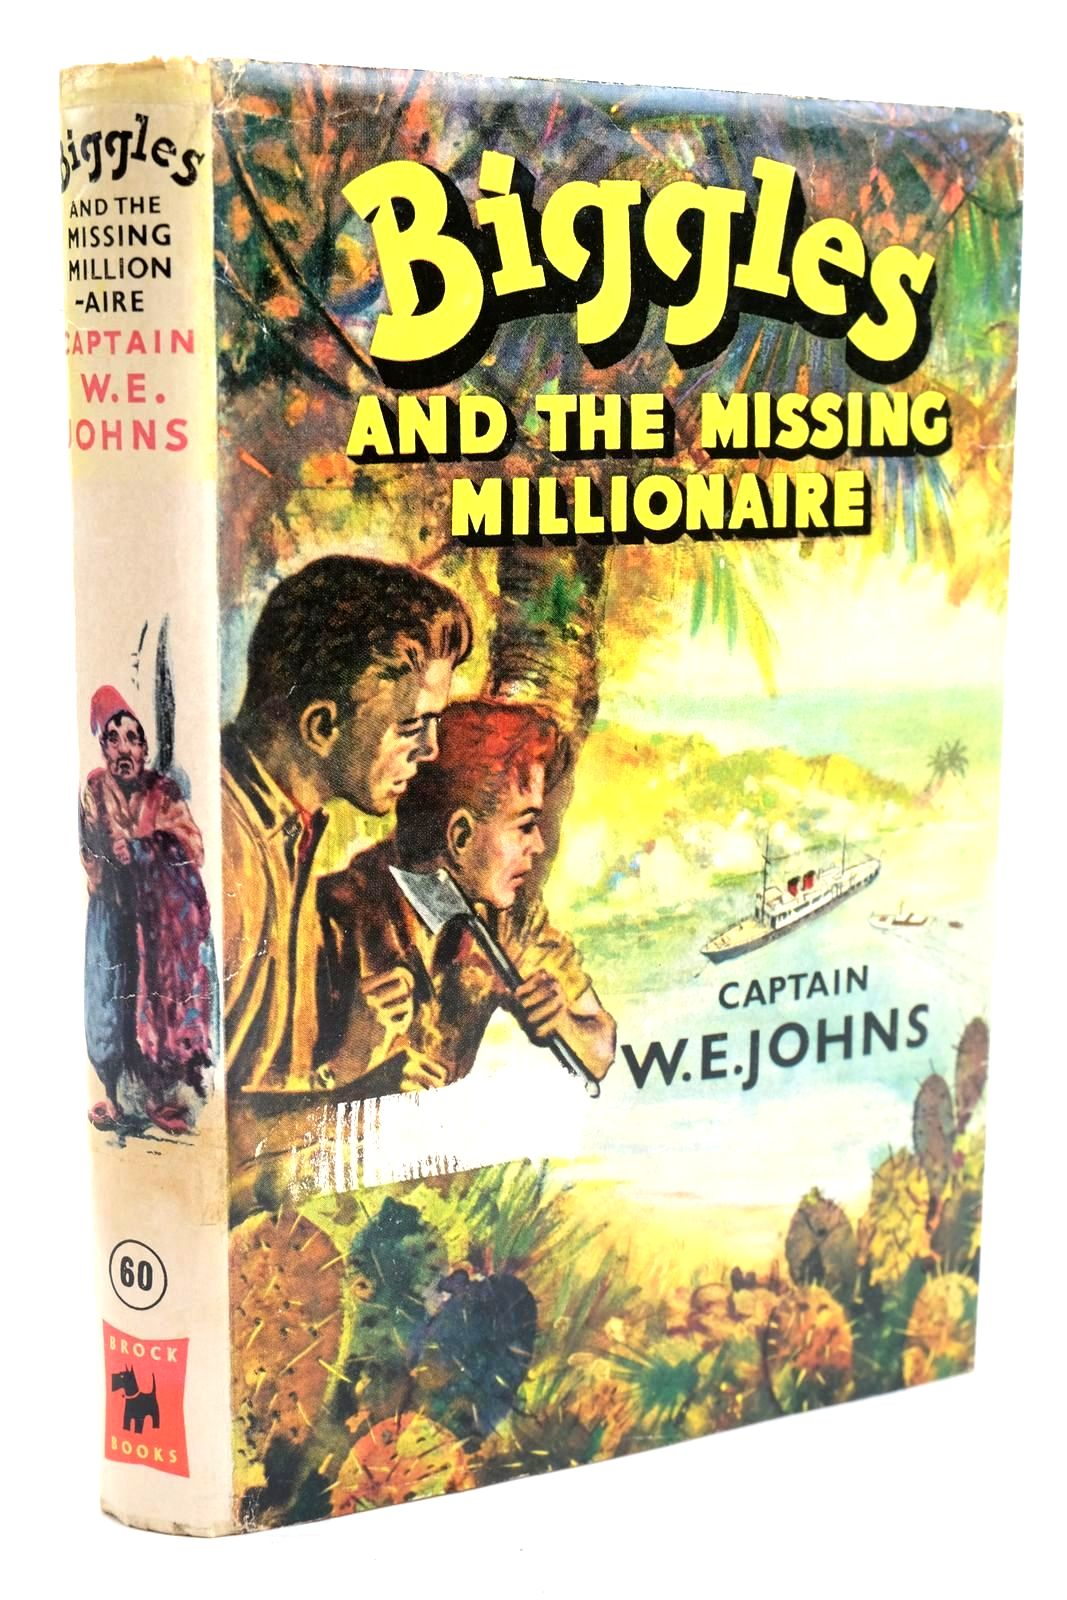 Photo of BIGGLES AND THE MISSING MILLIONAIRE written by Johns, W.E. illustrated by Stead, Leslie published by Brockhampton Press Ltd. (STOCK CODE: 1319726)  for sale by Stella & Rose's Books